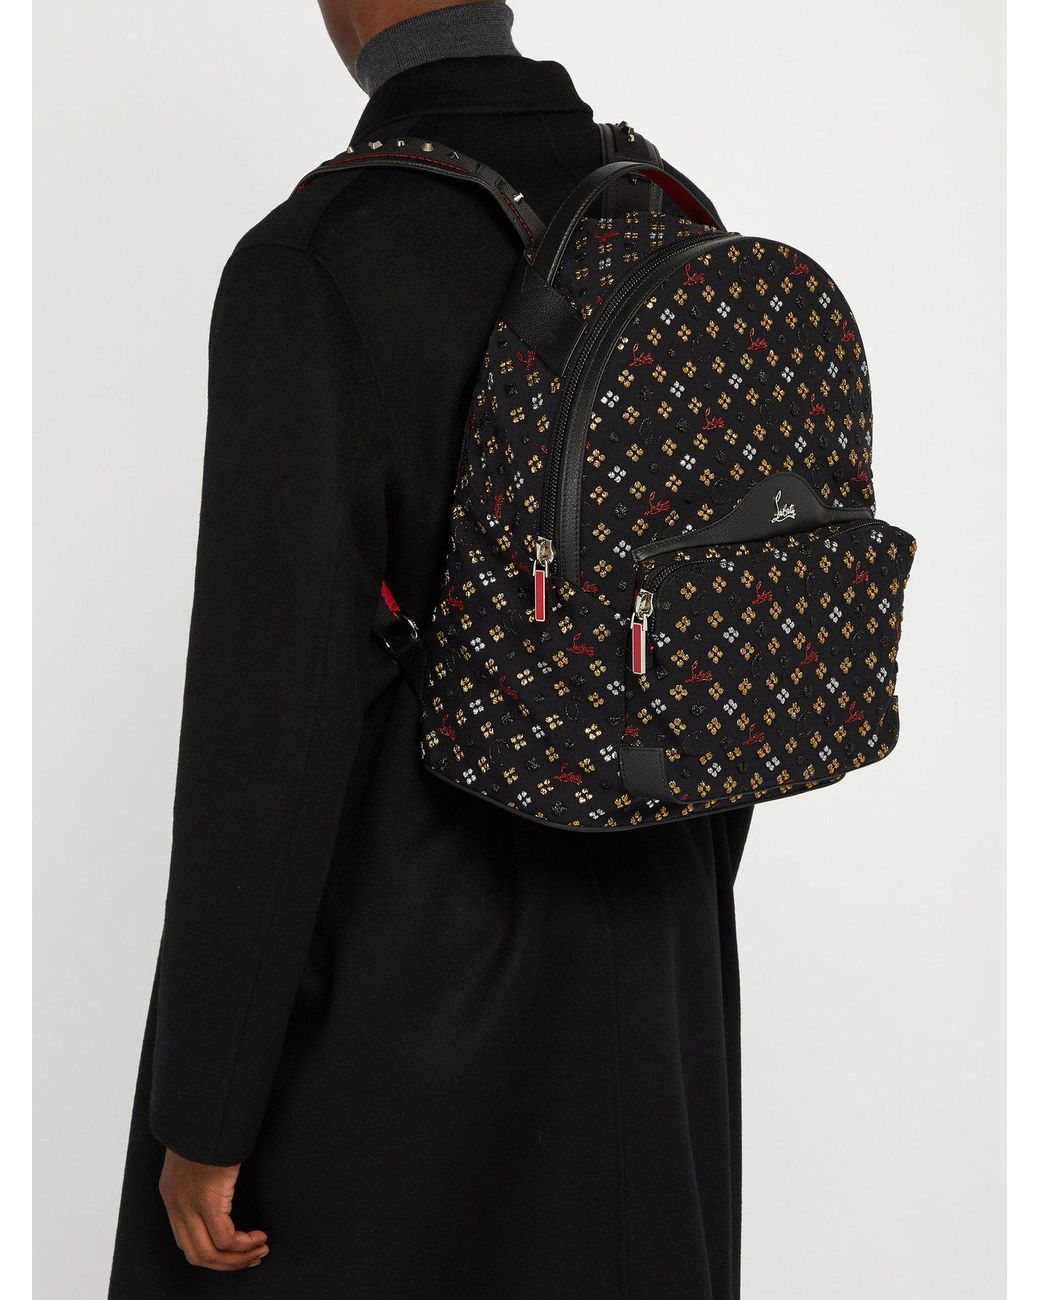 72a3960e5fa Men's Black Backloubi Metallic Embroidered Backpack